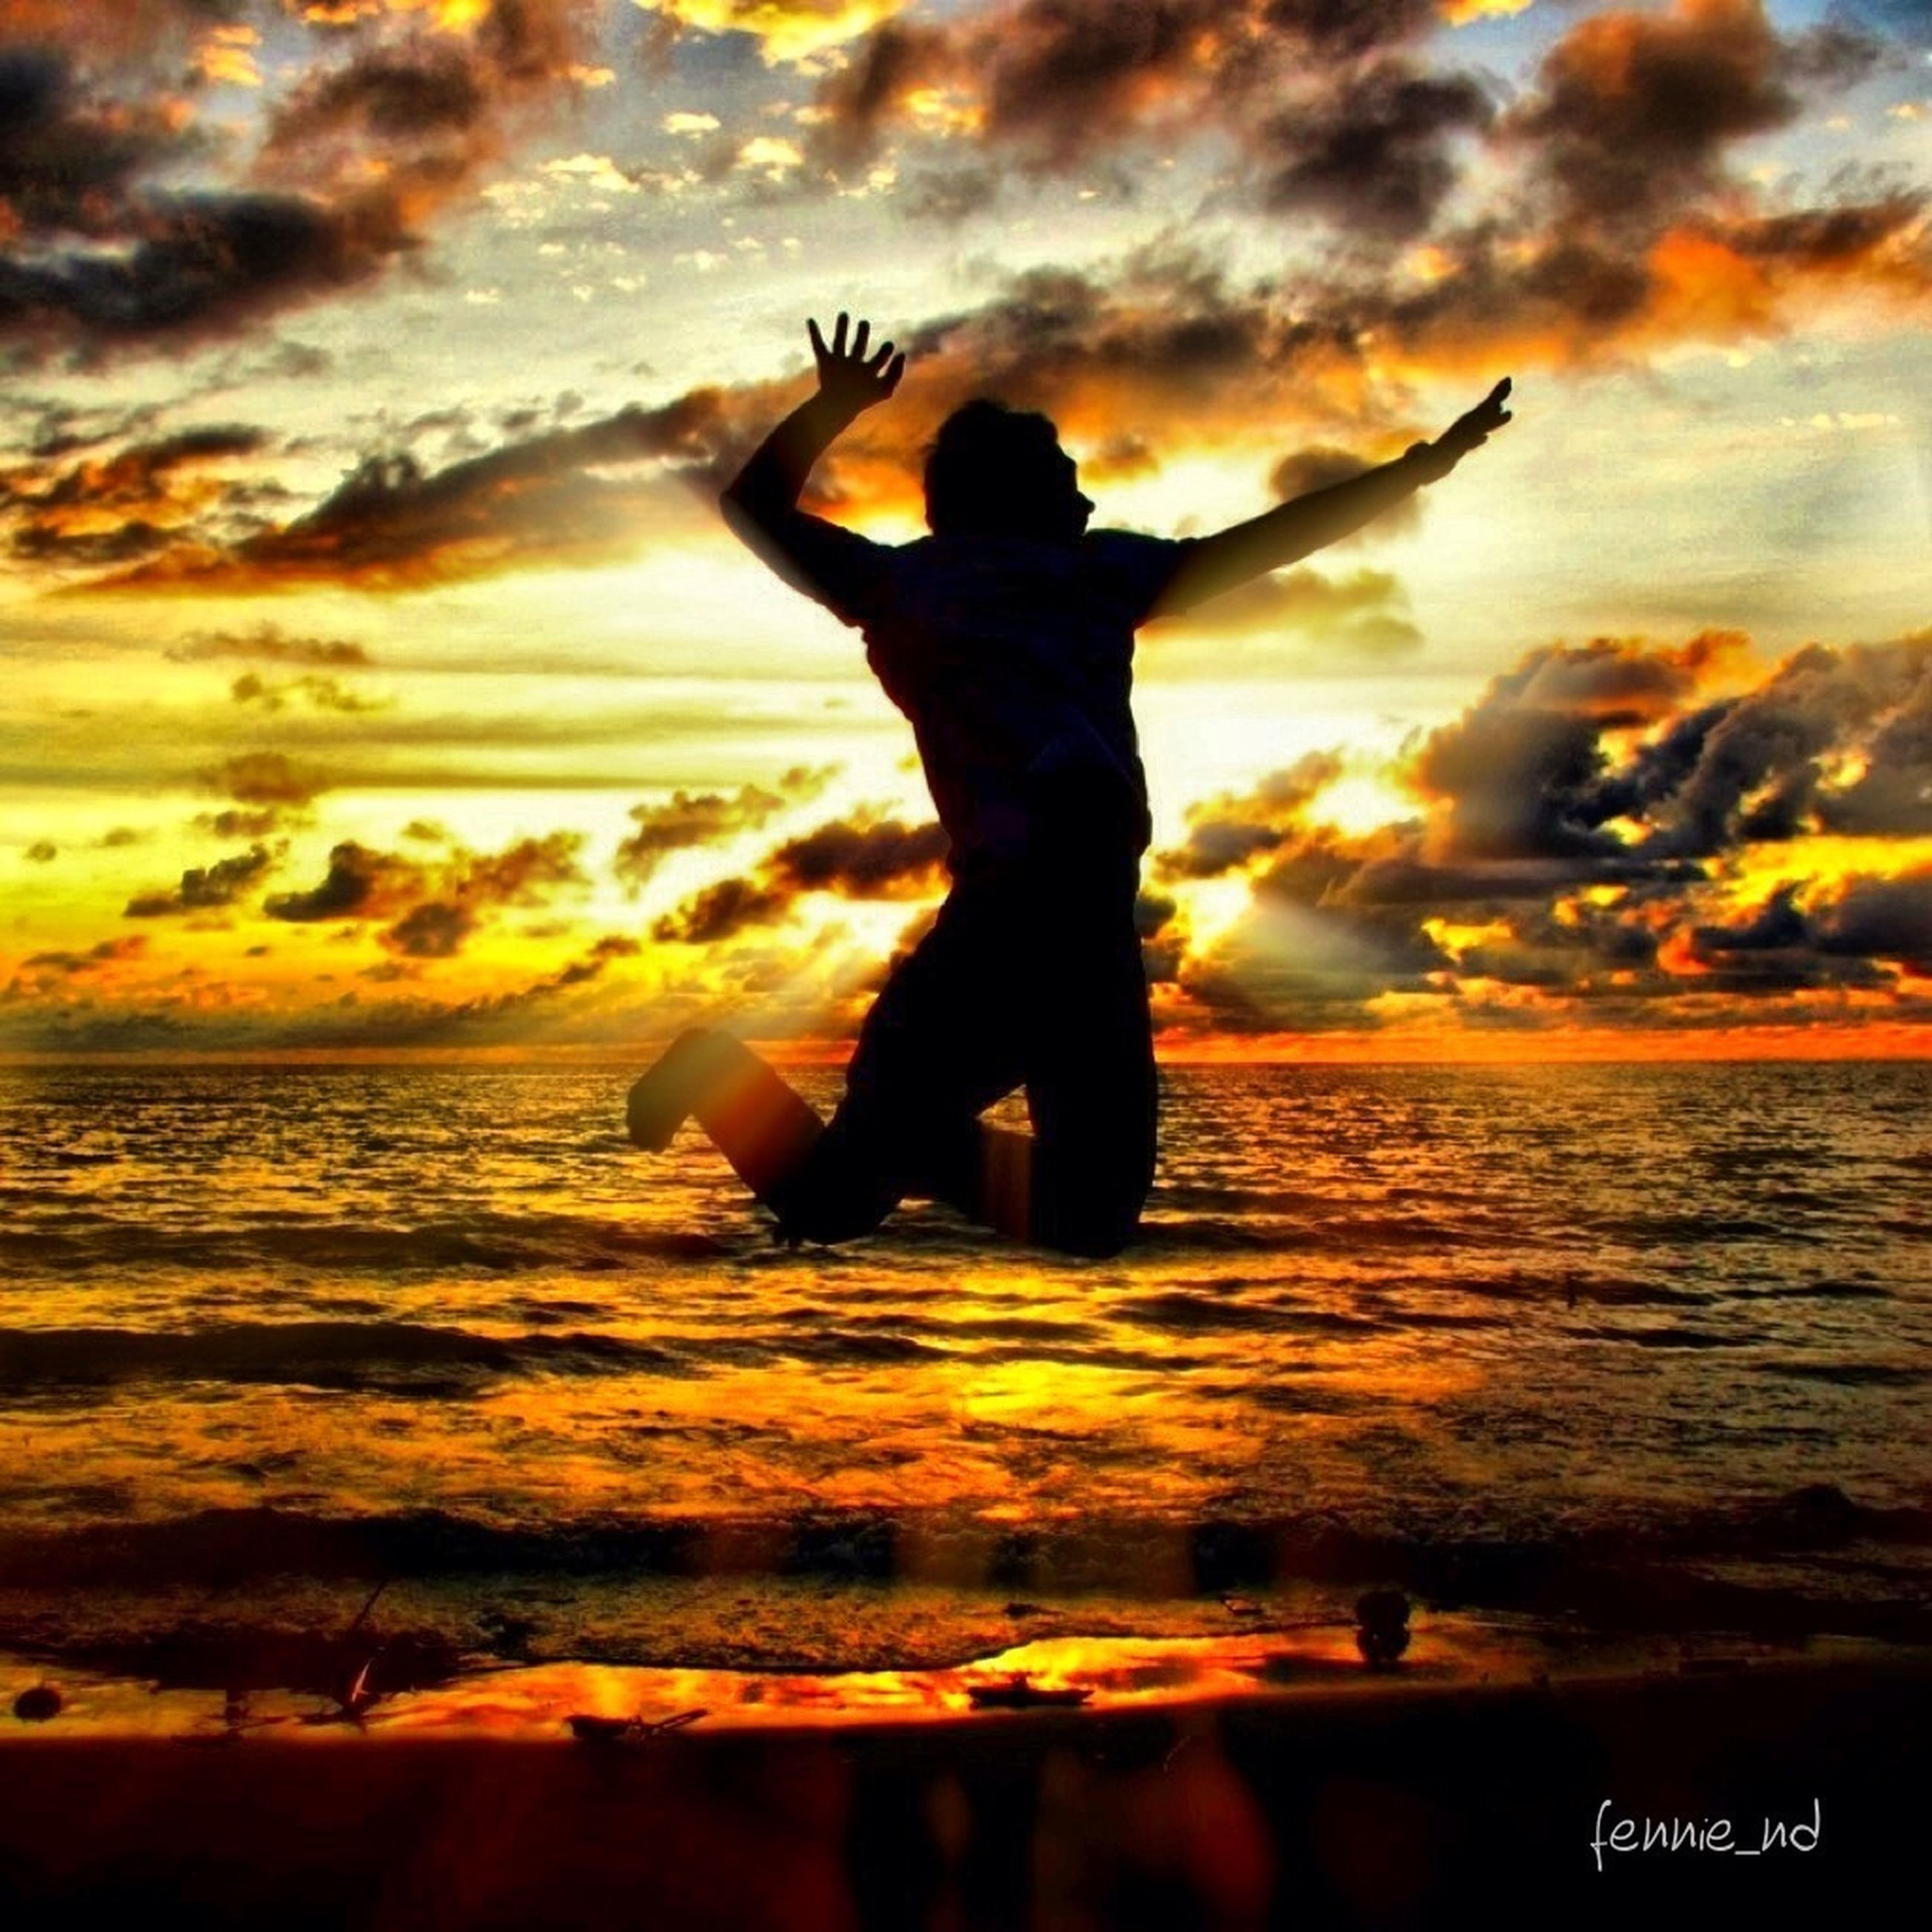 sunset, sky, lifestyles, leisure activity, sea, silhouette, cloud - sky, beach, orange color, full length, water, standing, dramatic sky, arms raised, scenics, person, horizon over water, beauty in nature